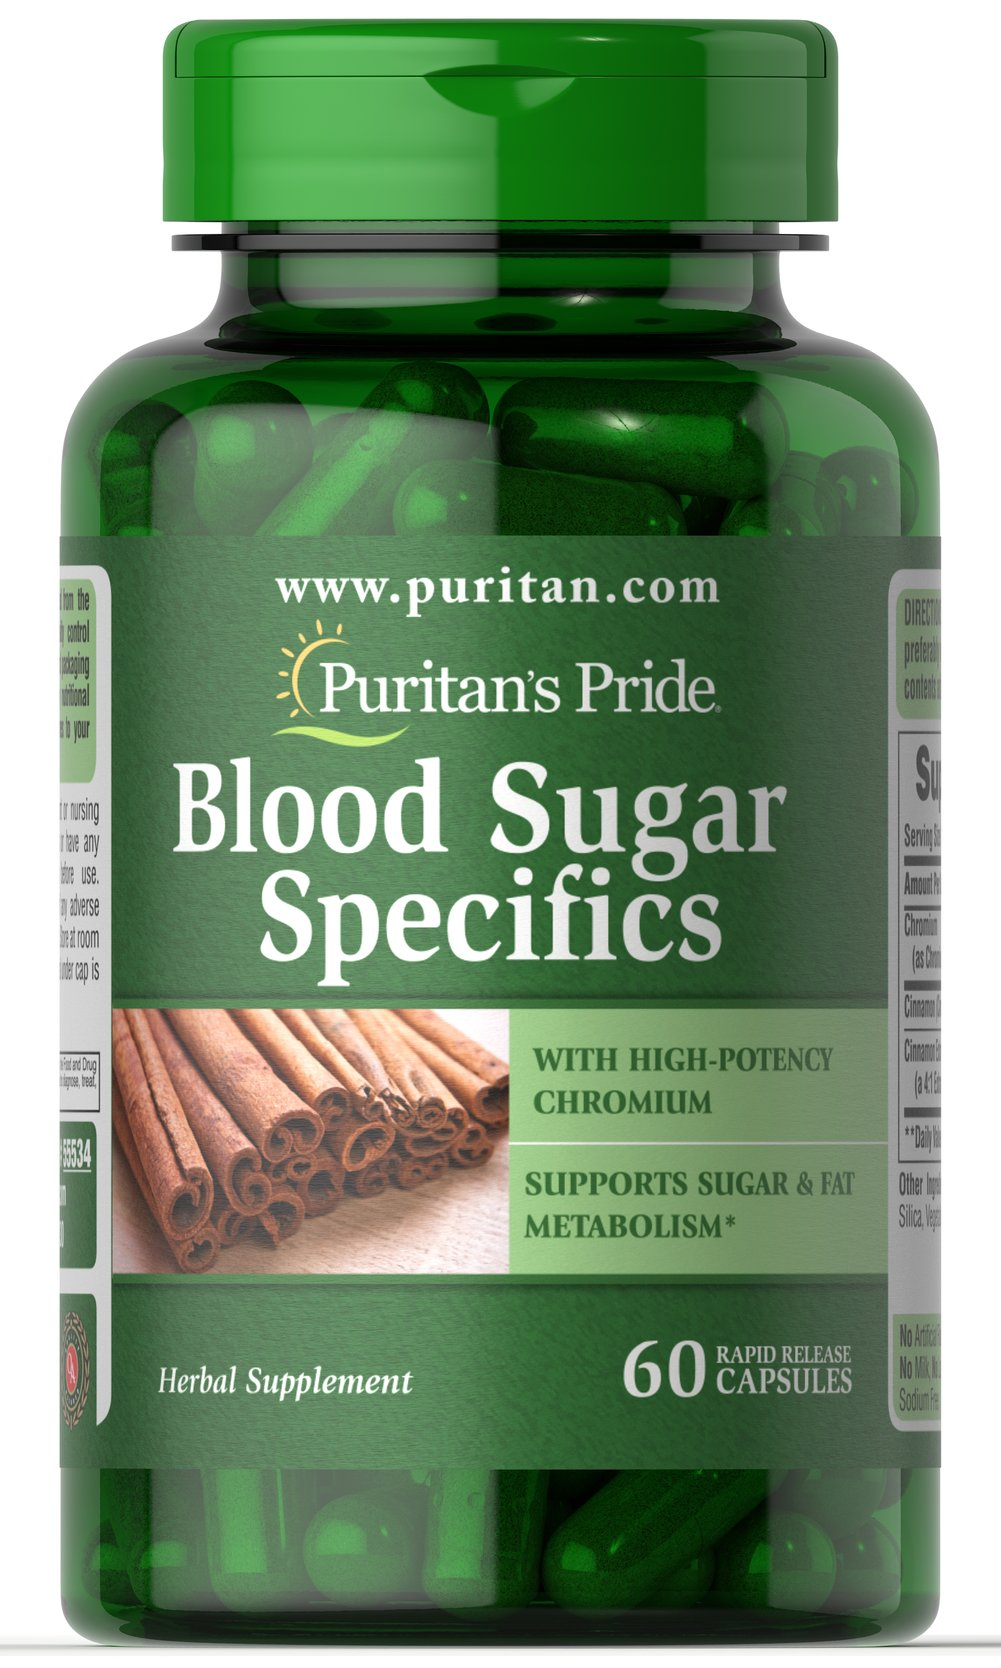 Blood Sugar Specifics with Cinnamon & Chromium